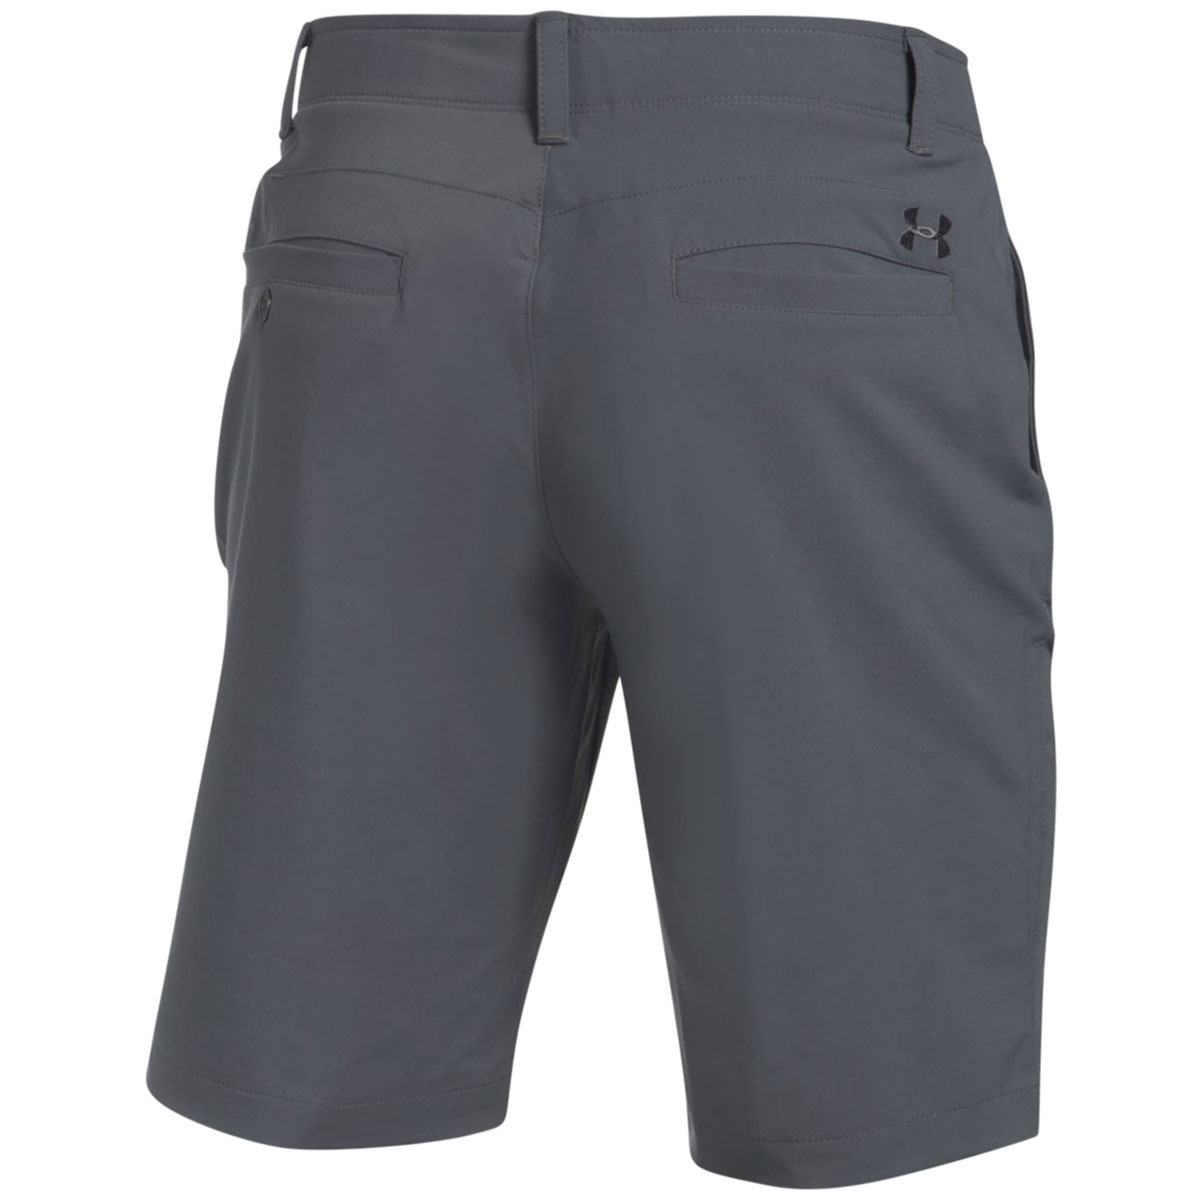 Under-Armour-Mens-UA-Match-Play-Taper-Tech-Performance-Golf-Shorts-29-OFF-RRP Indexbild 17